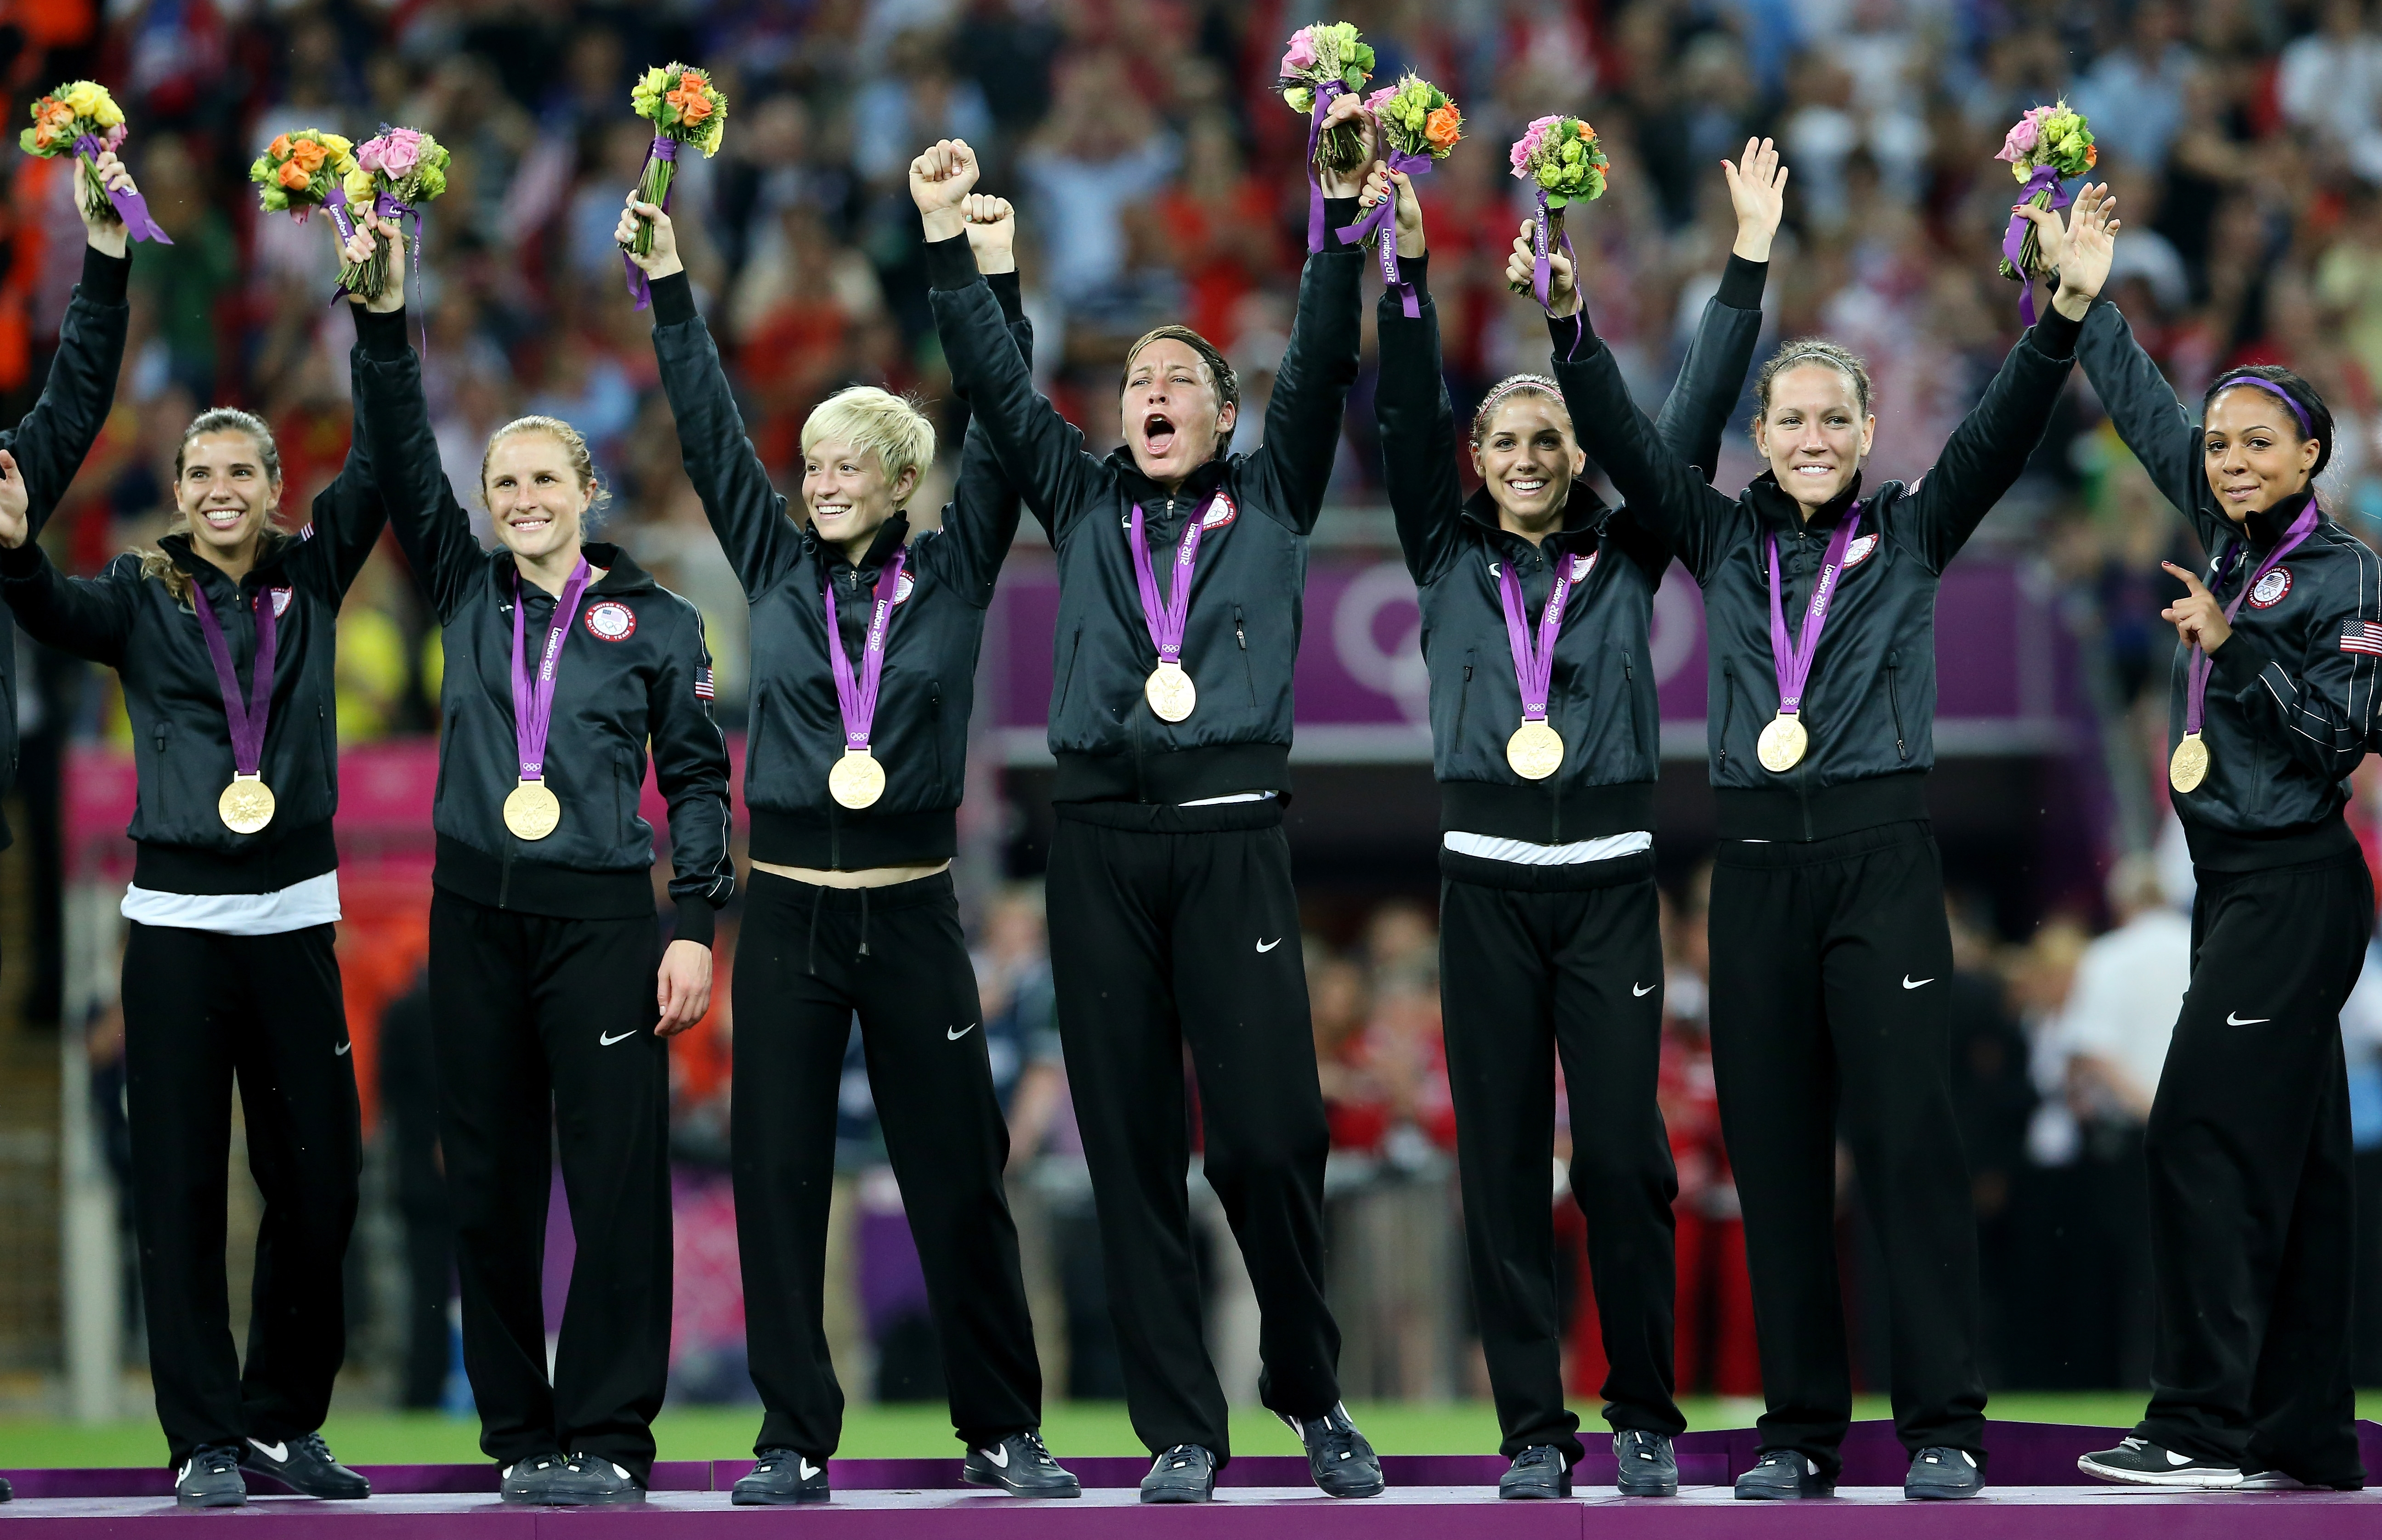 The United States women's soccer team celebrates after winning gold in London.